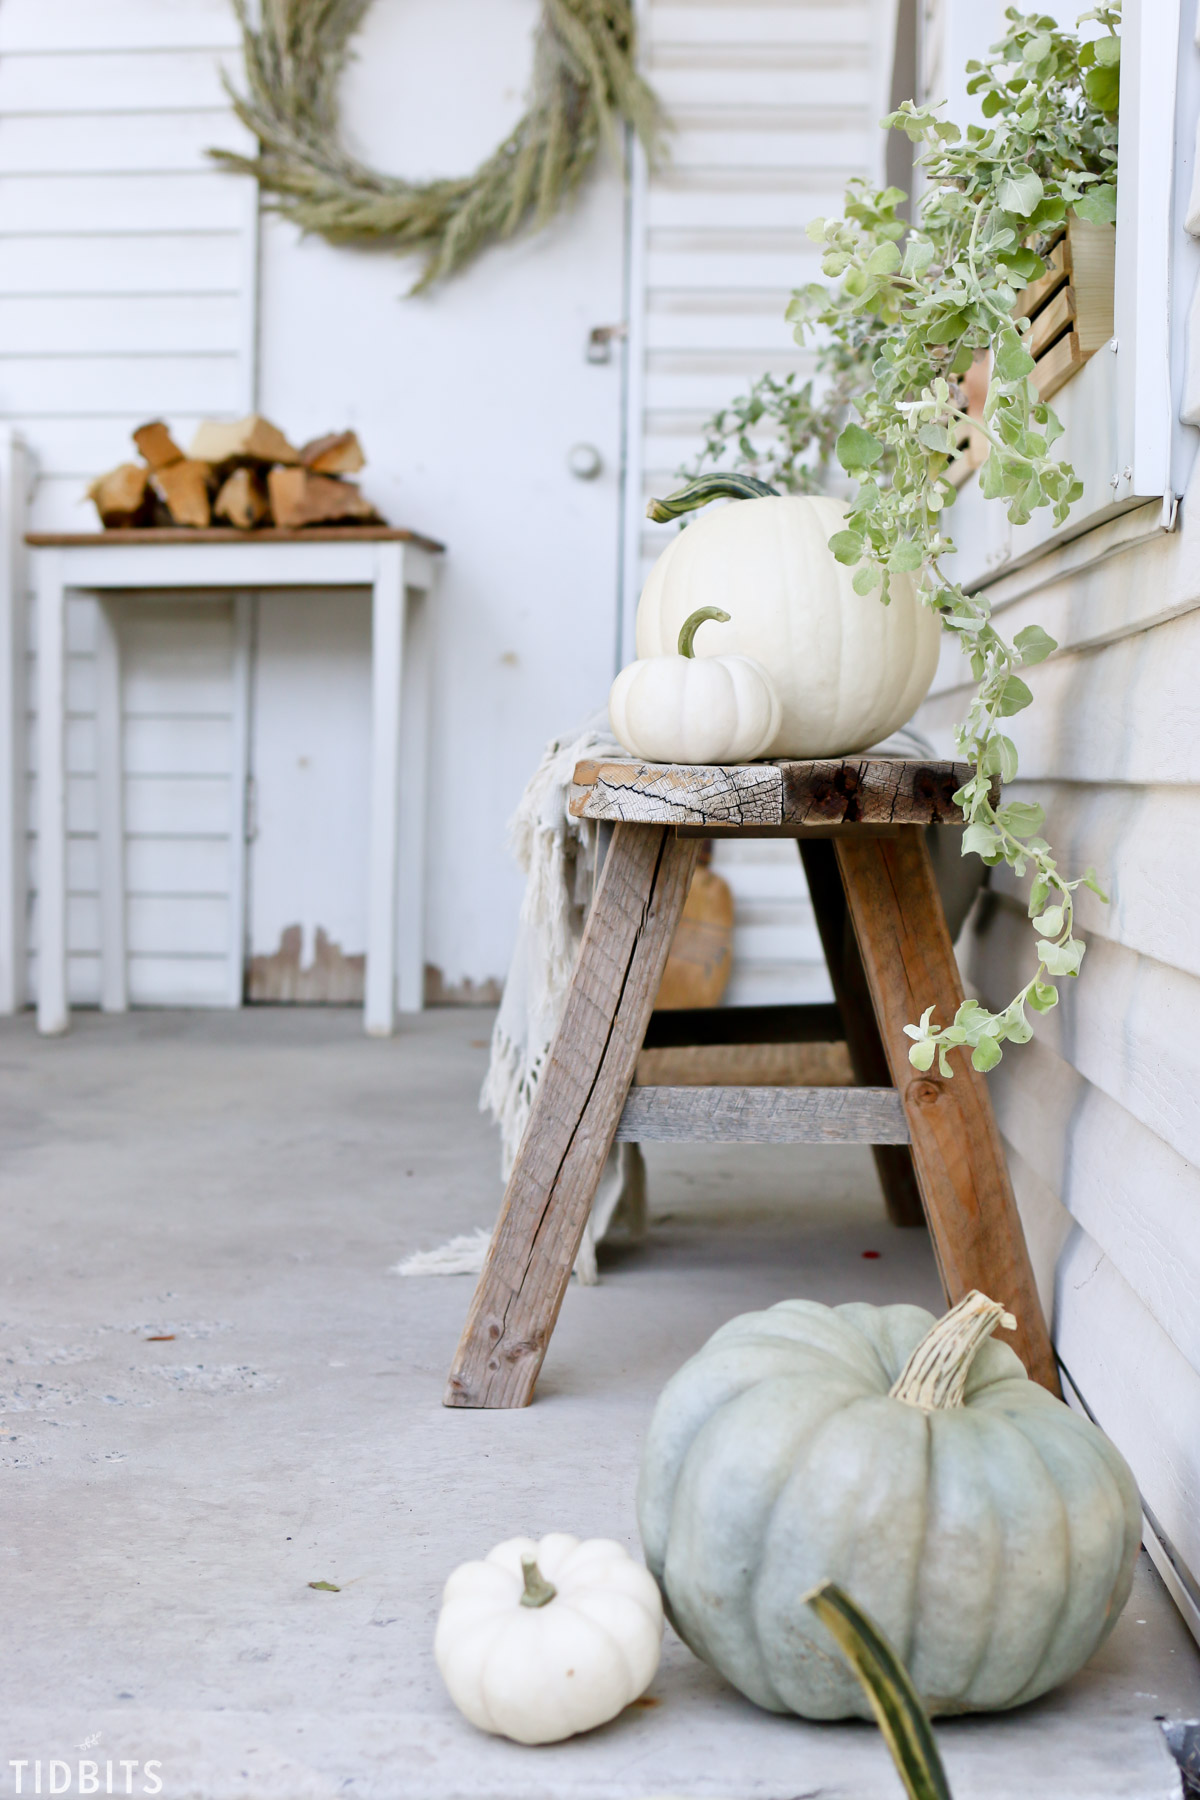 pumpkins on a Fall front porch